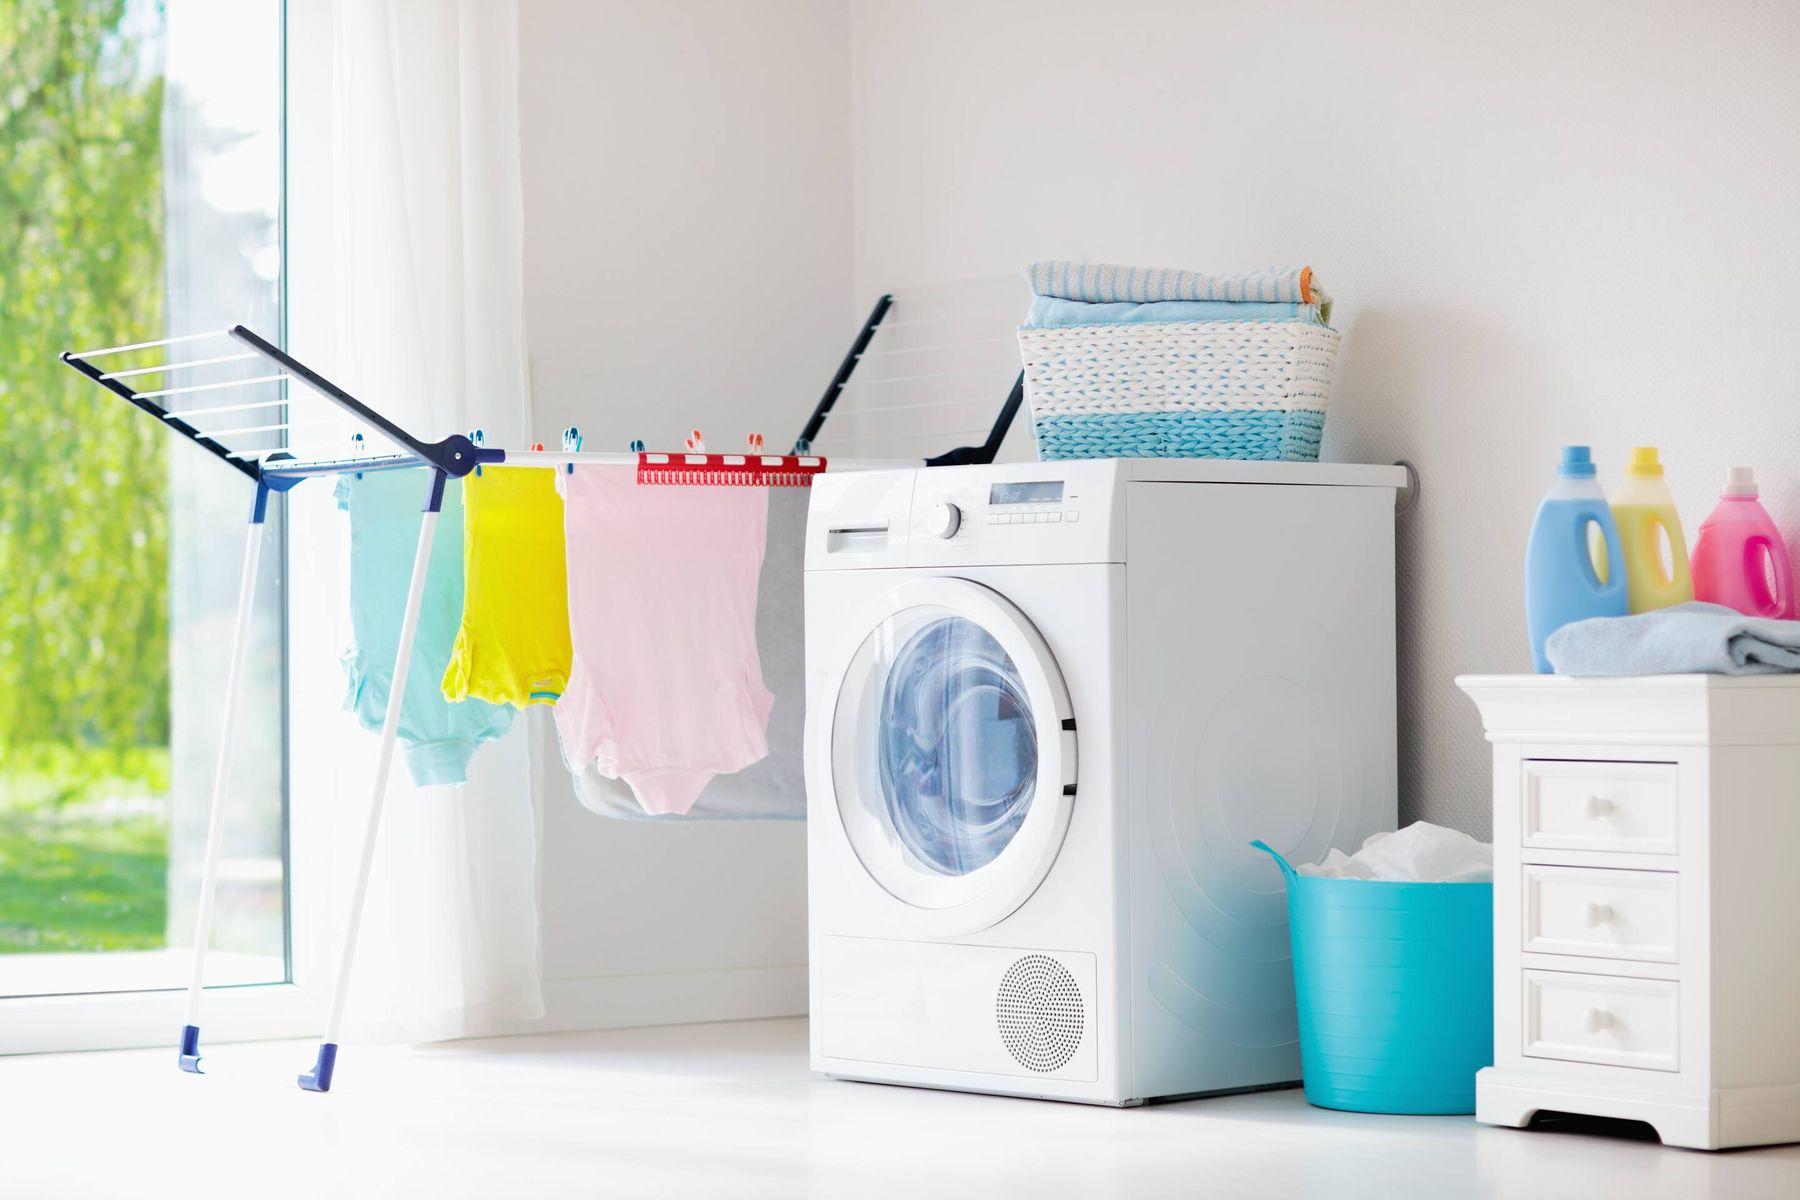 Best laundry detergent for your clothes